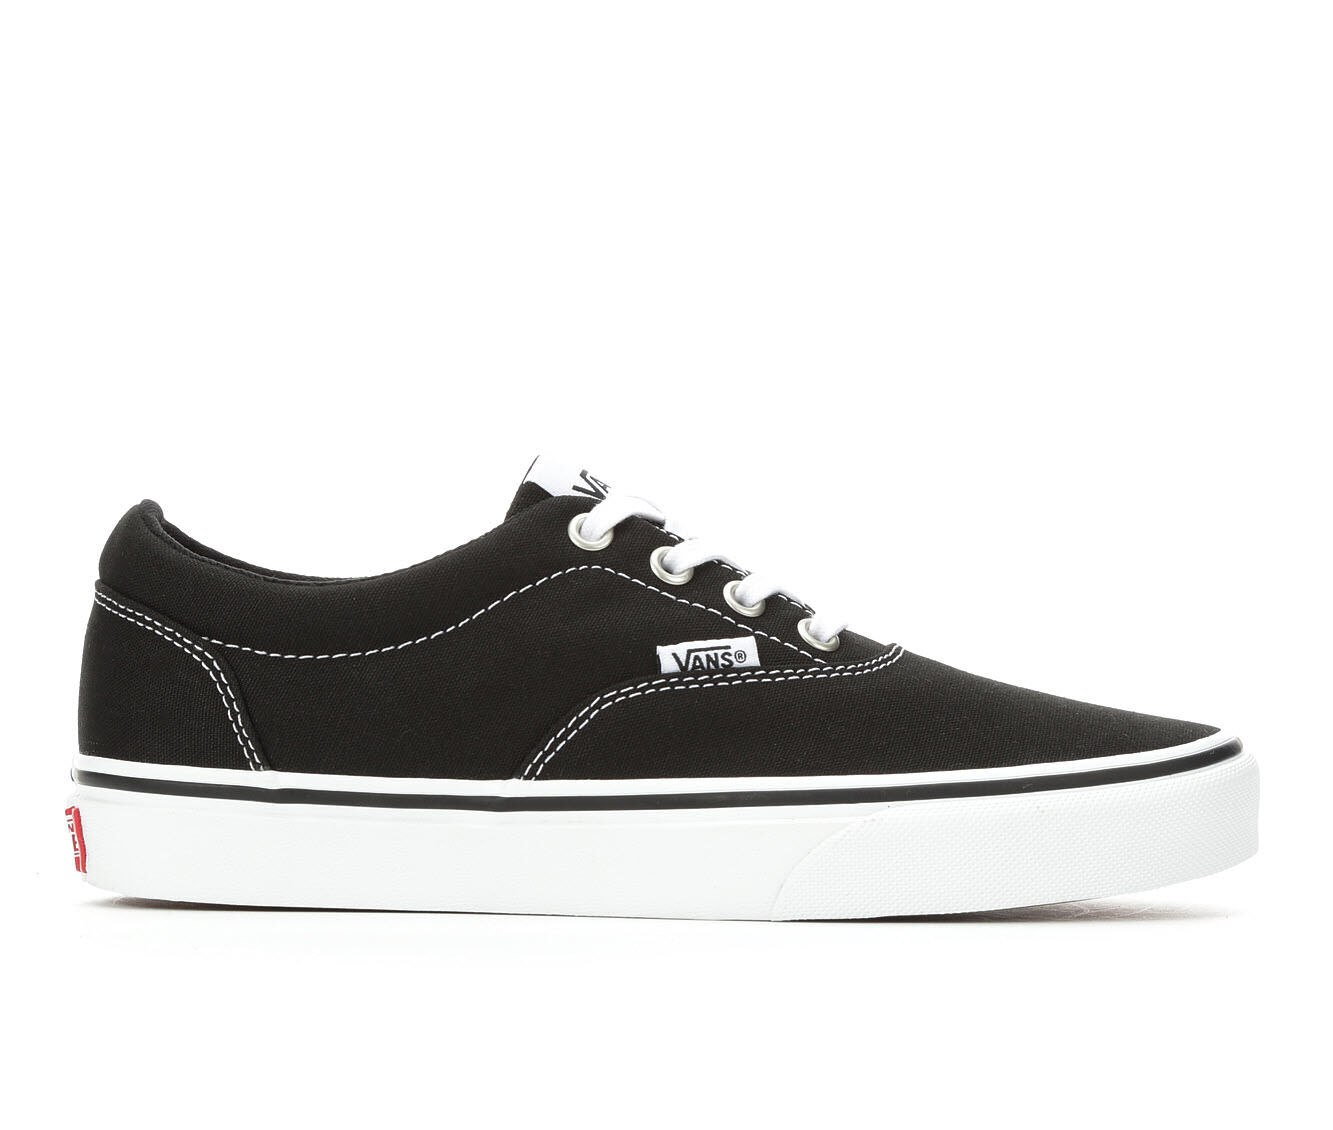 Extremely Cool Women's Vans Doheny Skate Shoes Black/White